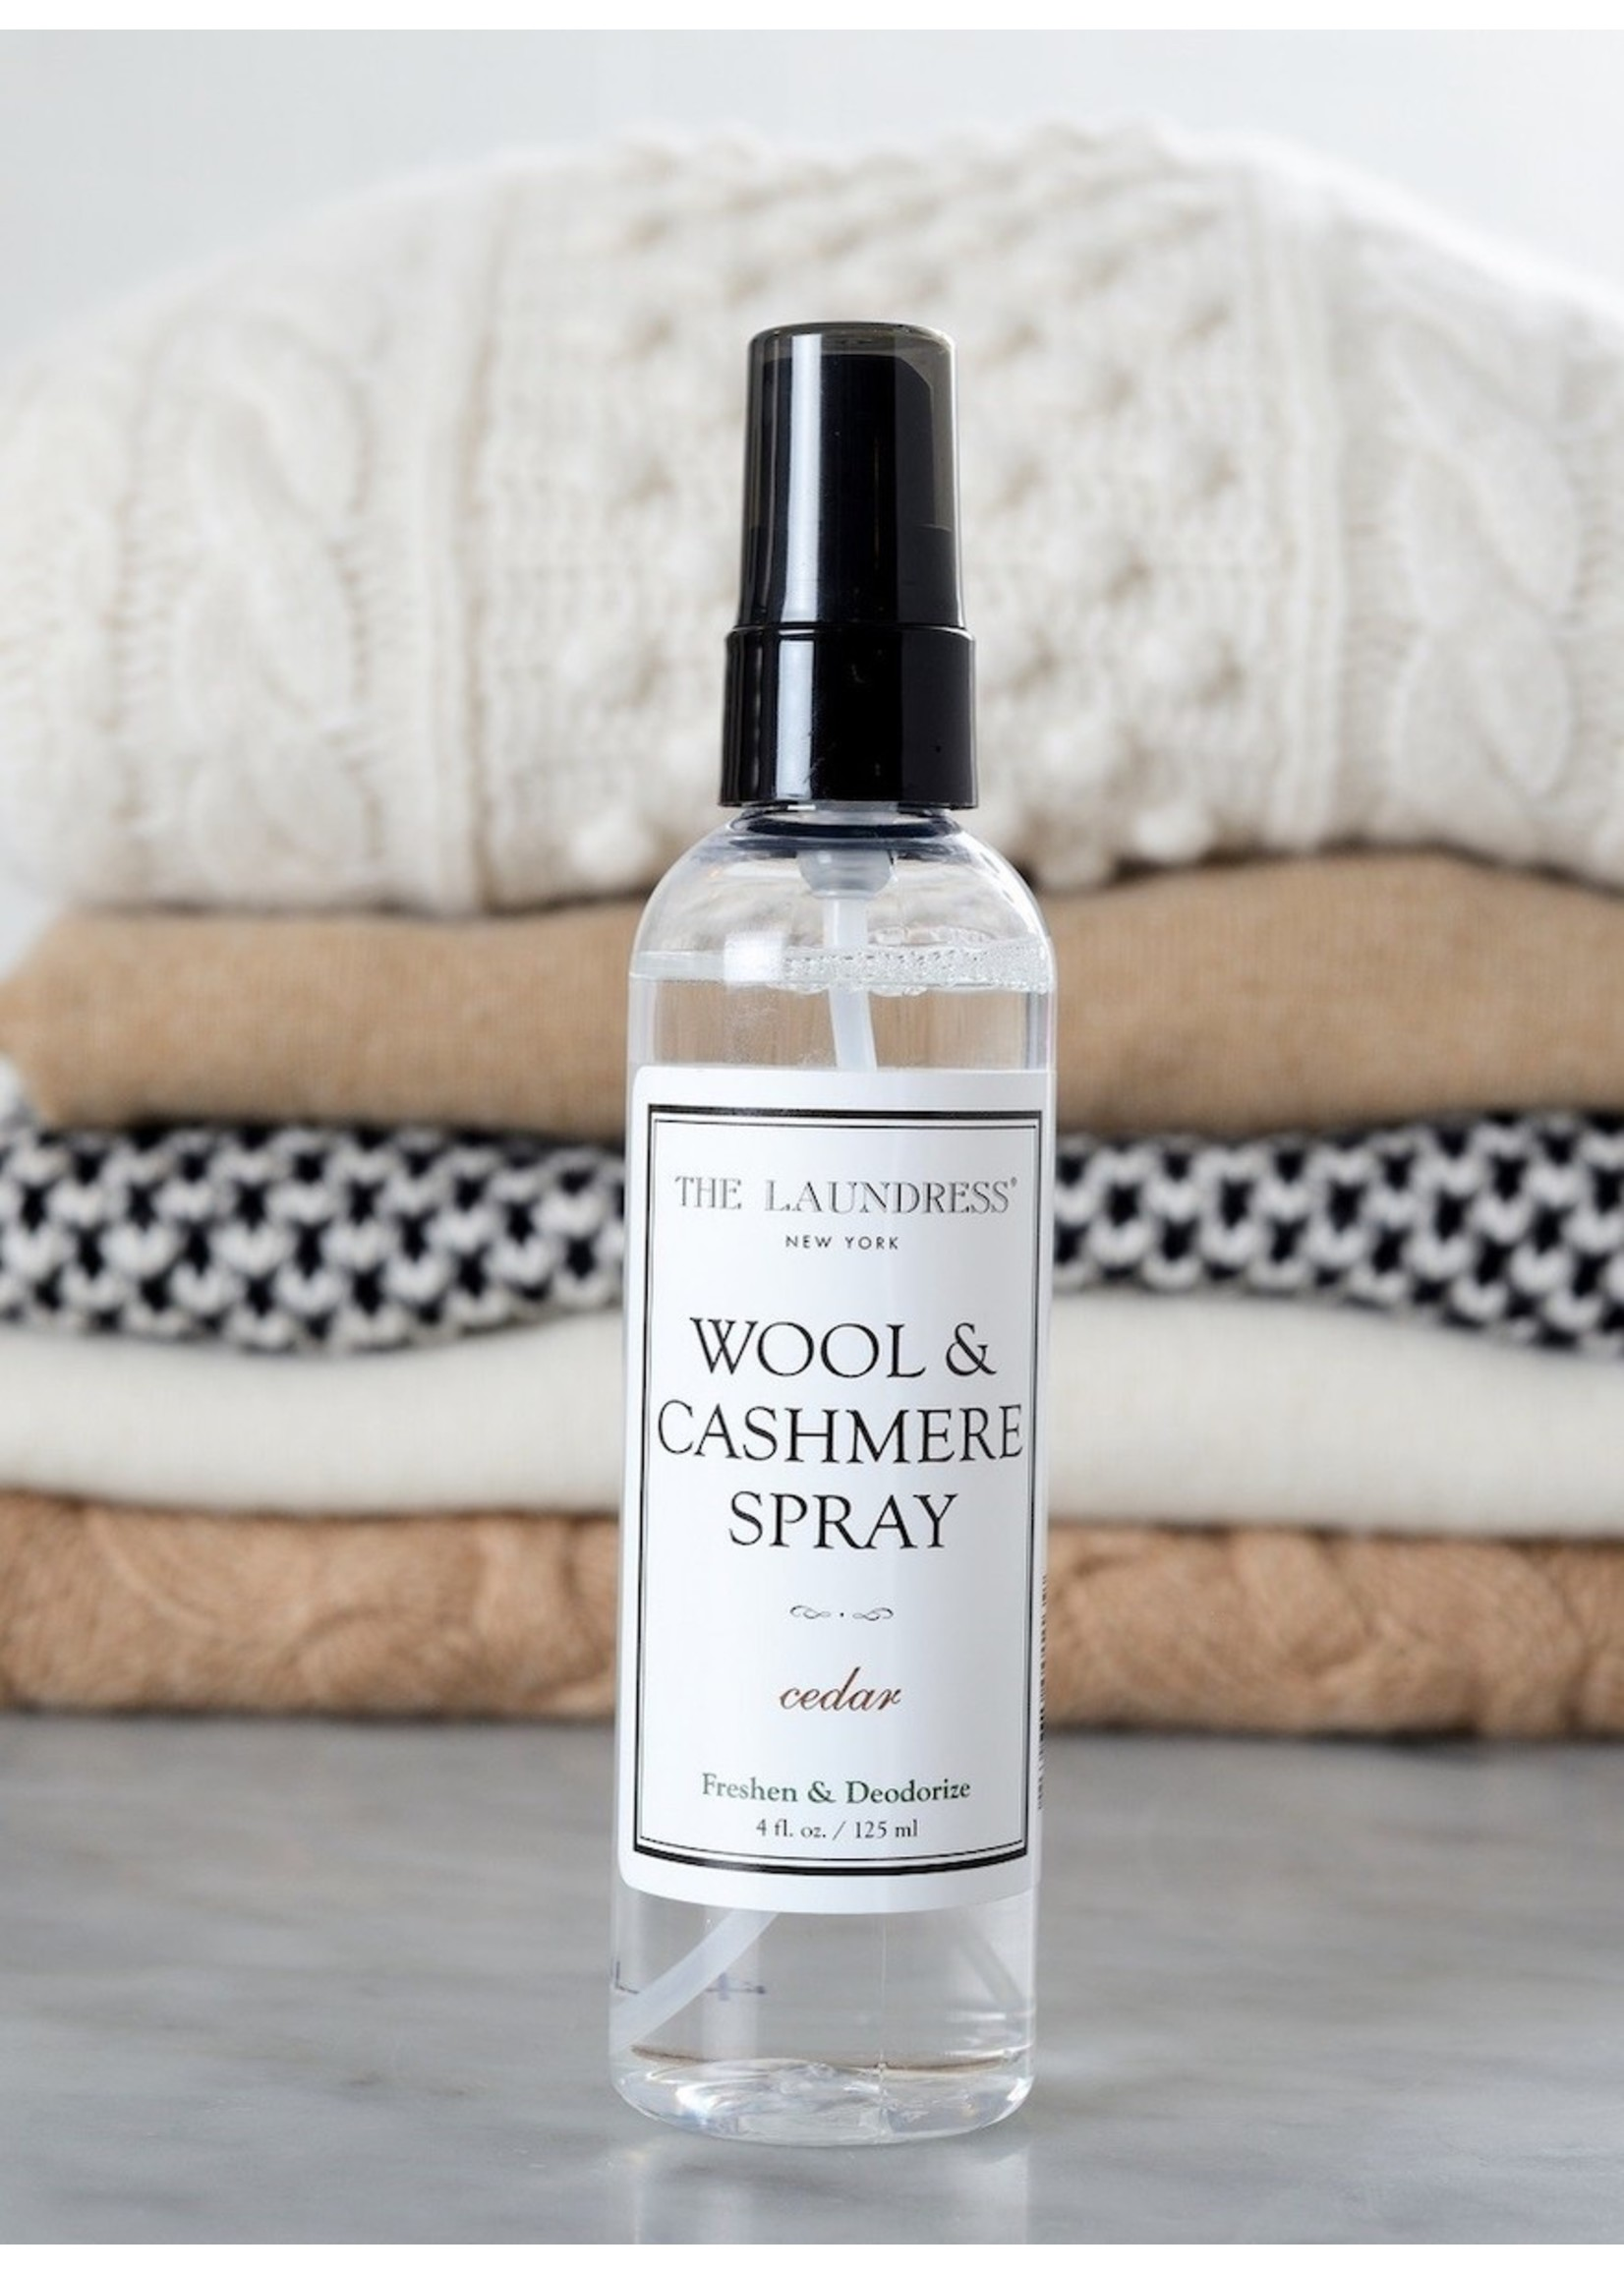 The Laundress New York Wool & Cashmere Spray